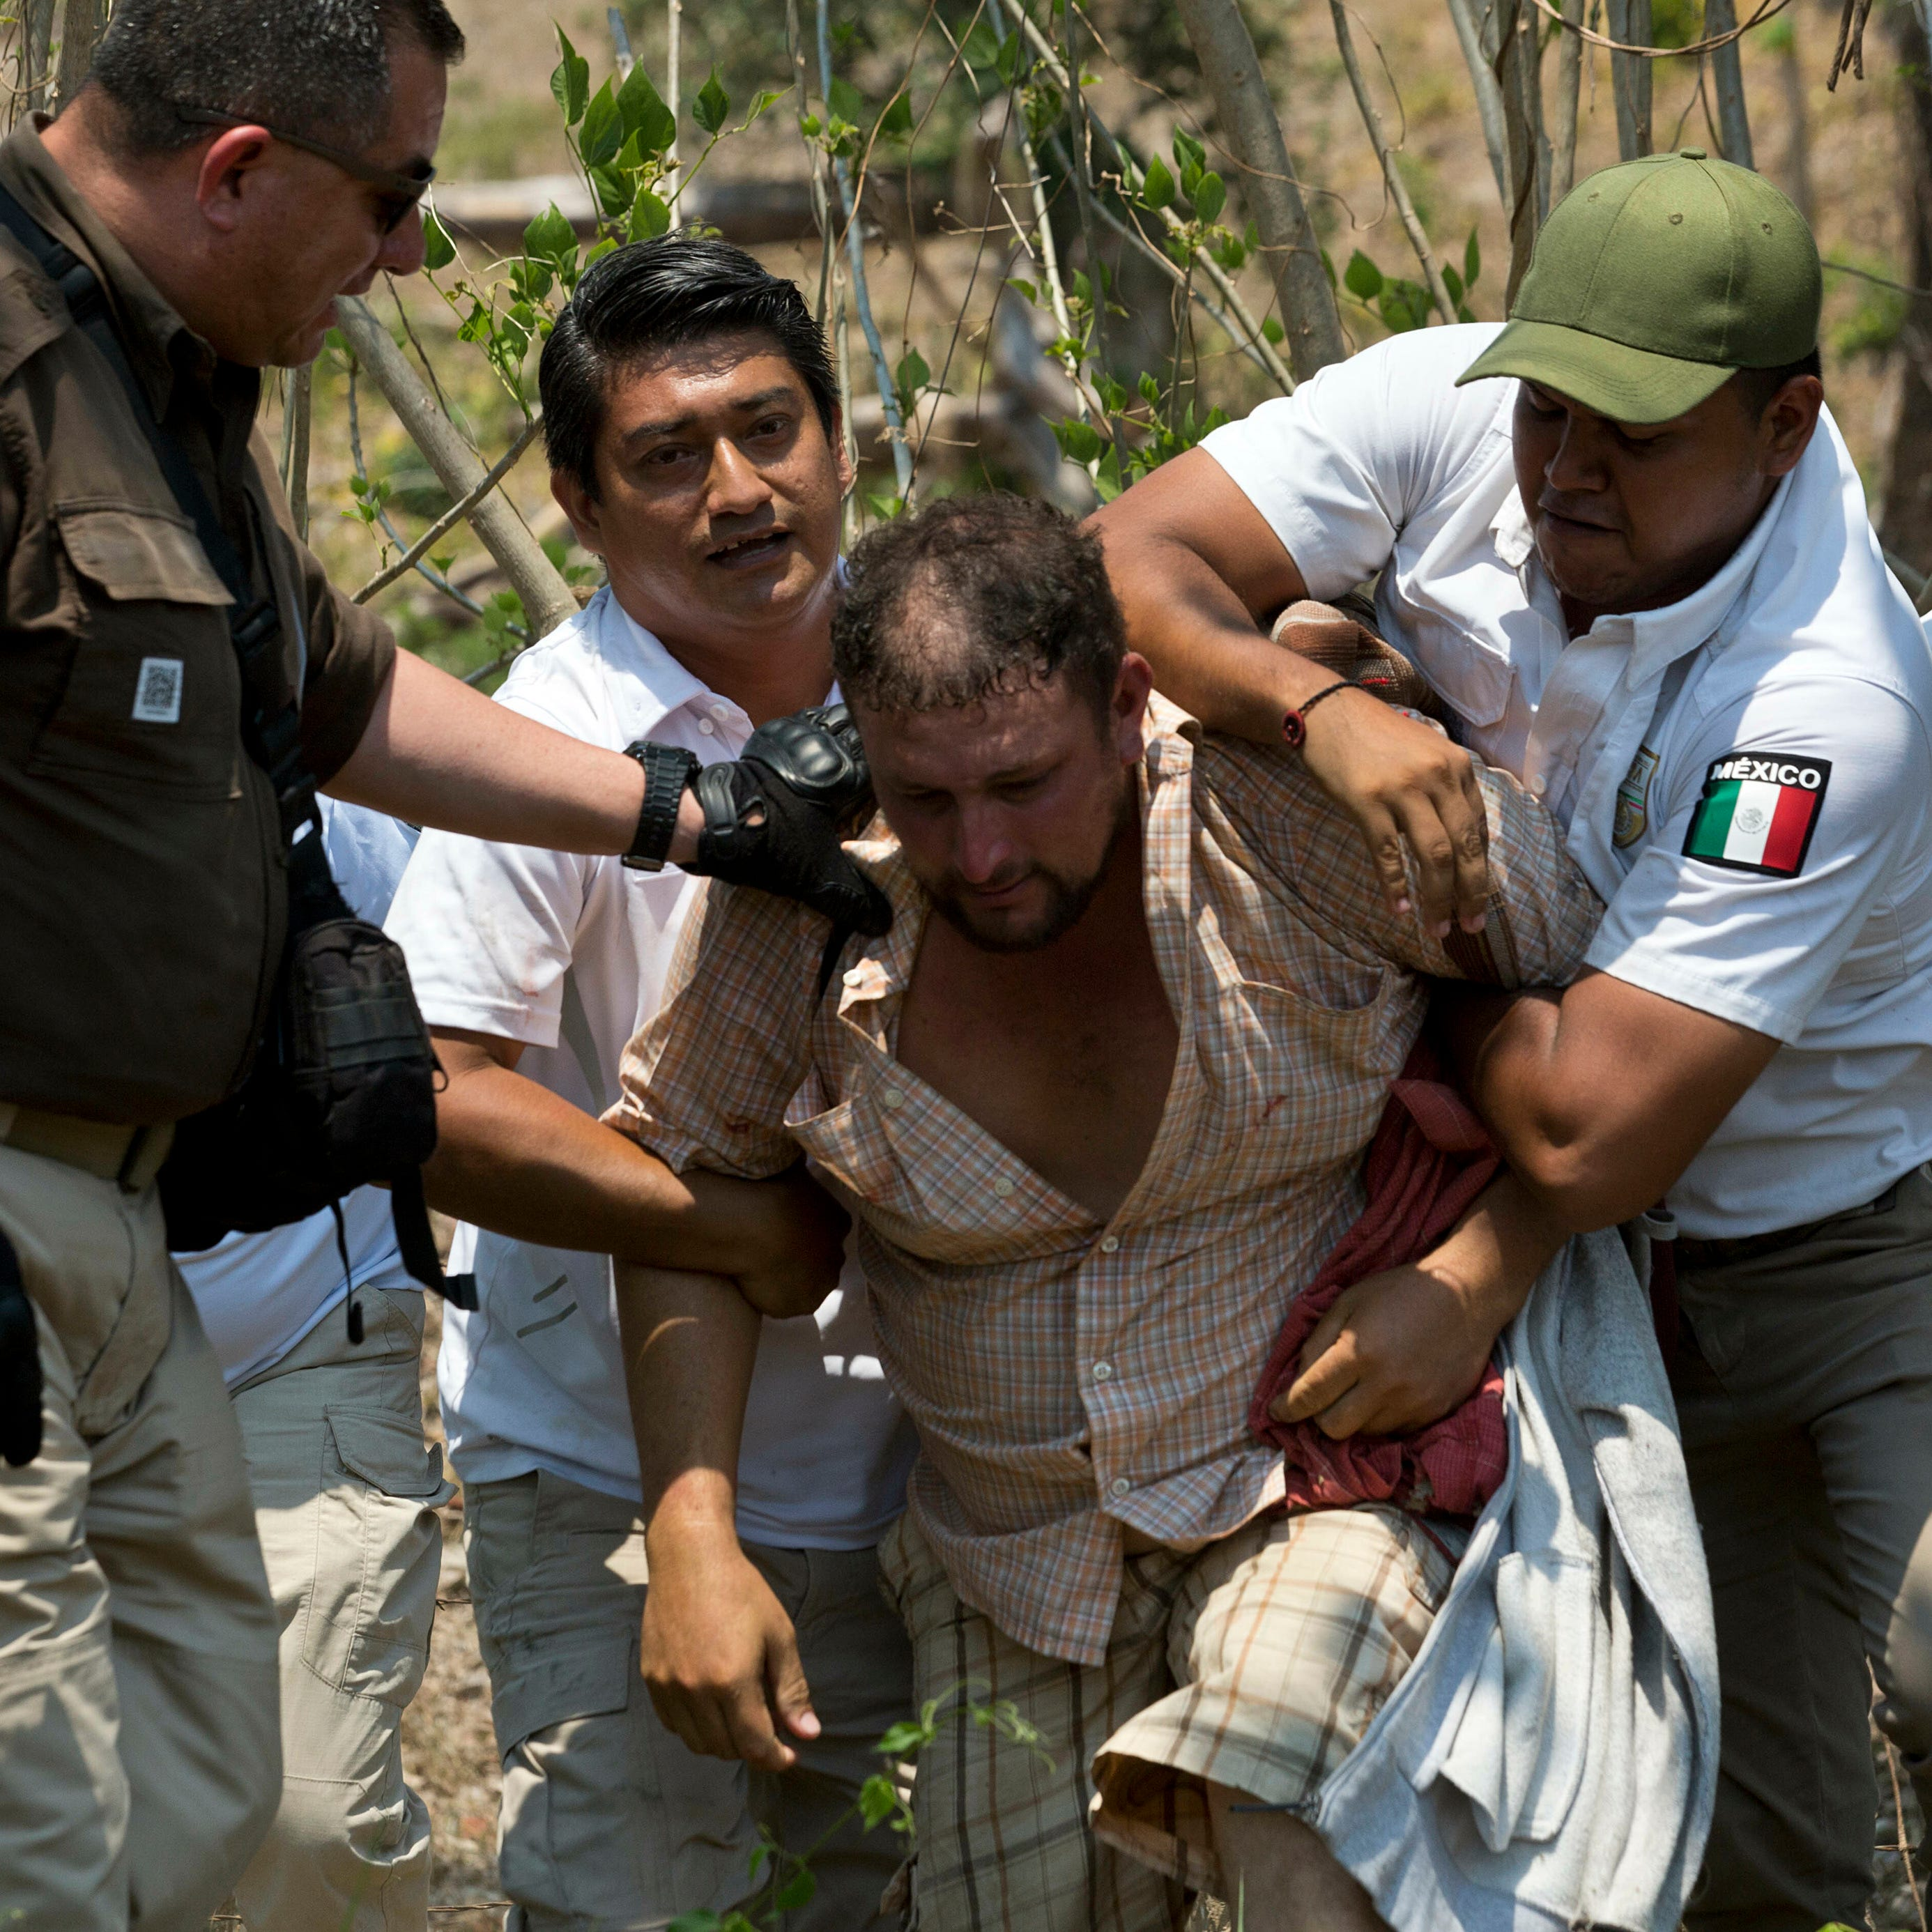 A Central American migrant is detained by Mexican immigration agents on the highway to Pijijiapan, Mexico, on April 22, 2019. Mexican police and immigration agents detained hundreds of Central American migrants Monday in the largest single raid on a migrant caravan since the groups started moving through Mexico last year.